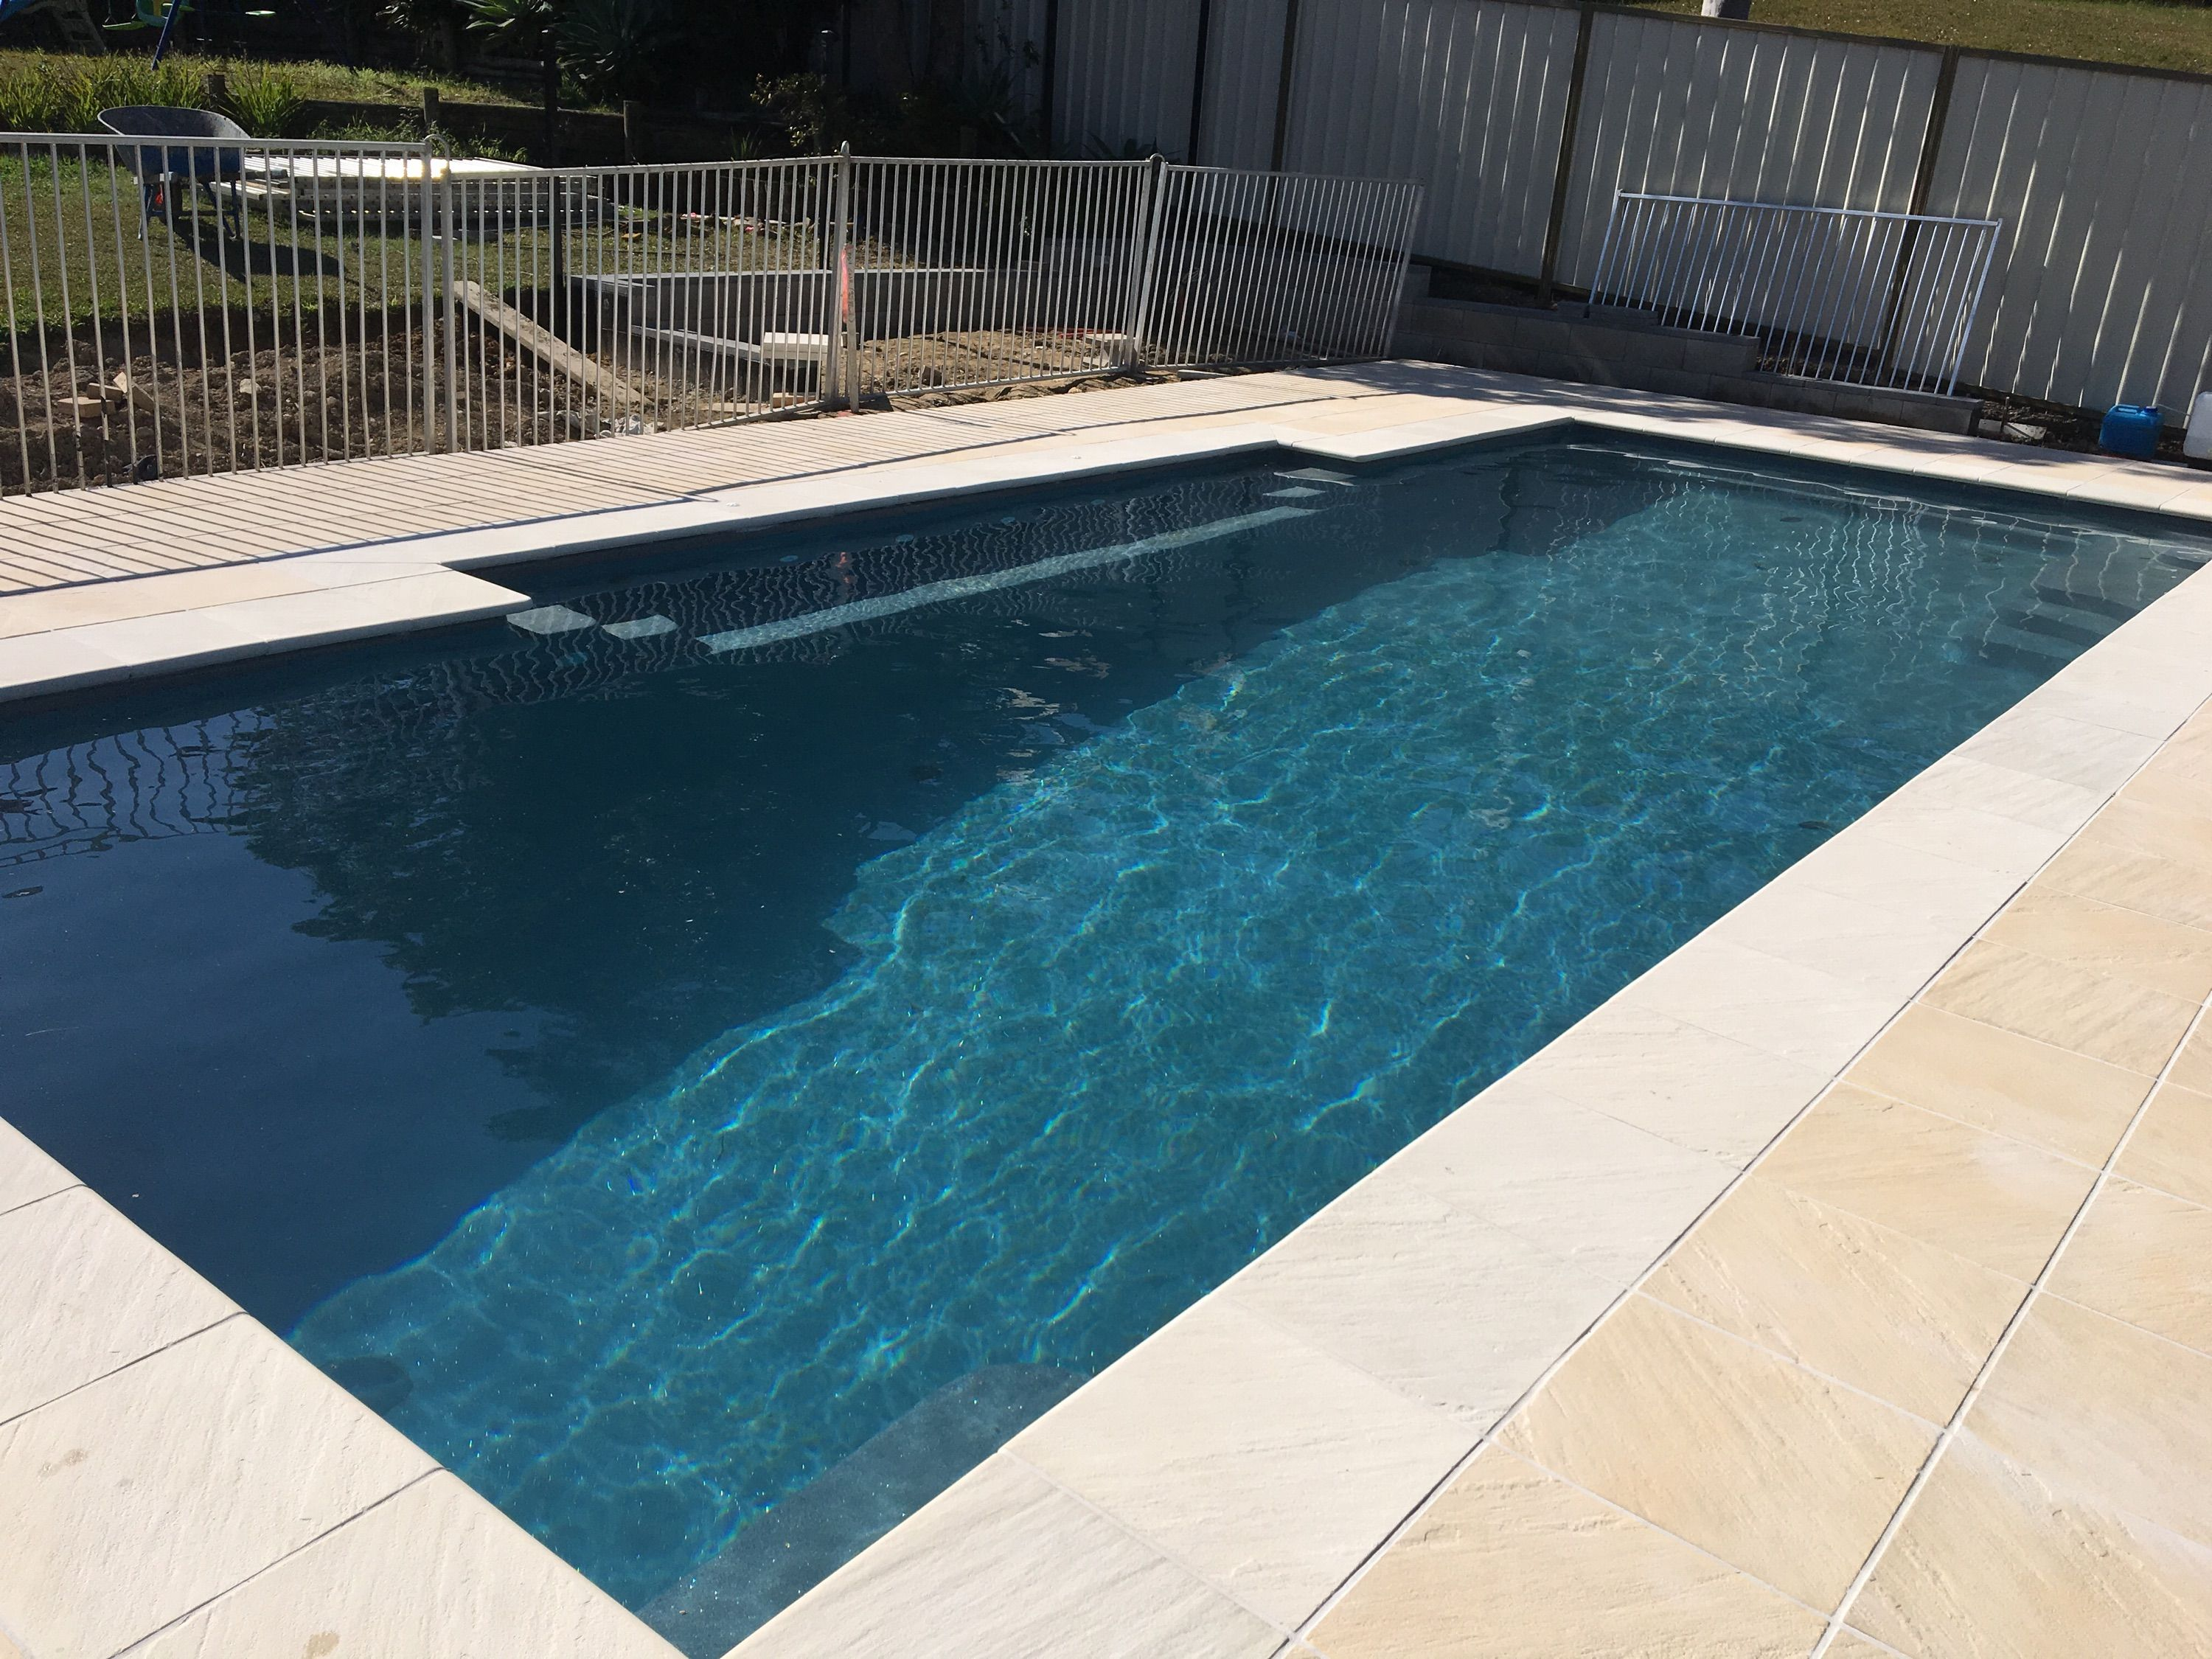 A Compass Pools Install In Evolution From The Bi Luminite Range Of Colours Small Pool Design Pool Colors Pool Paving